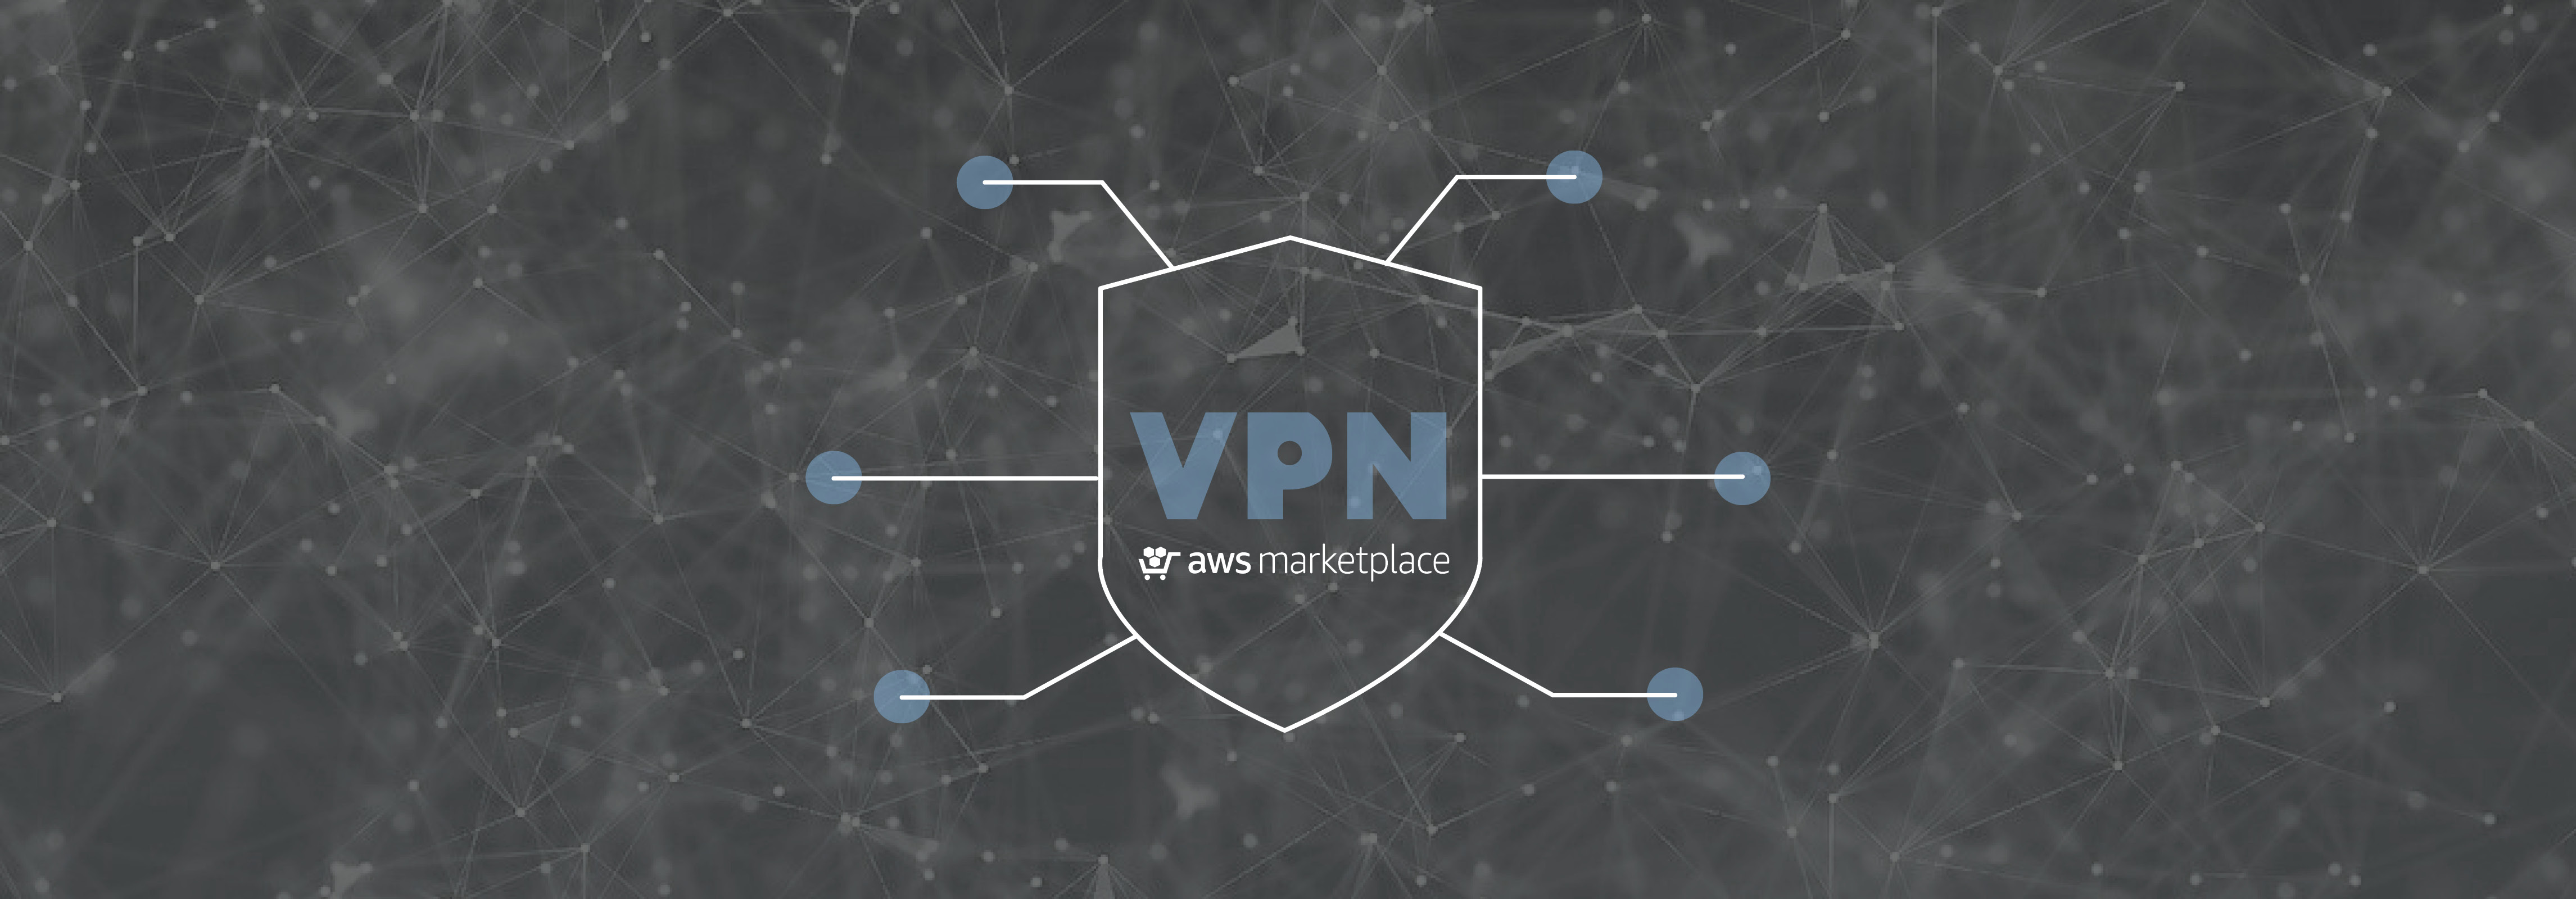 VPN icon with aws Marketplace logo on network background